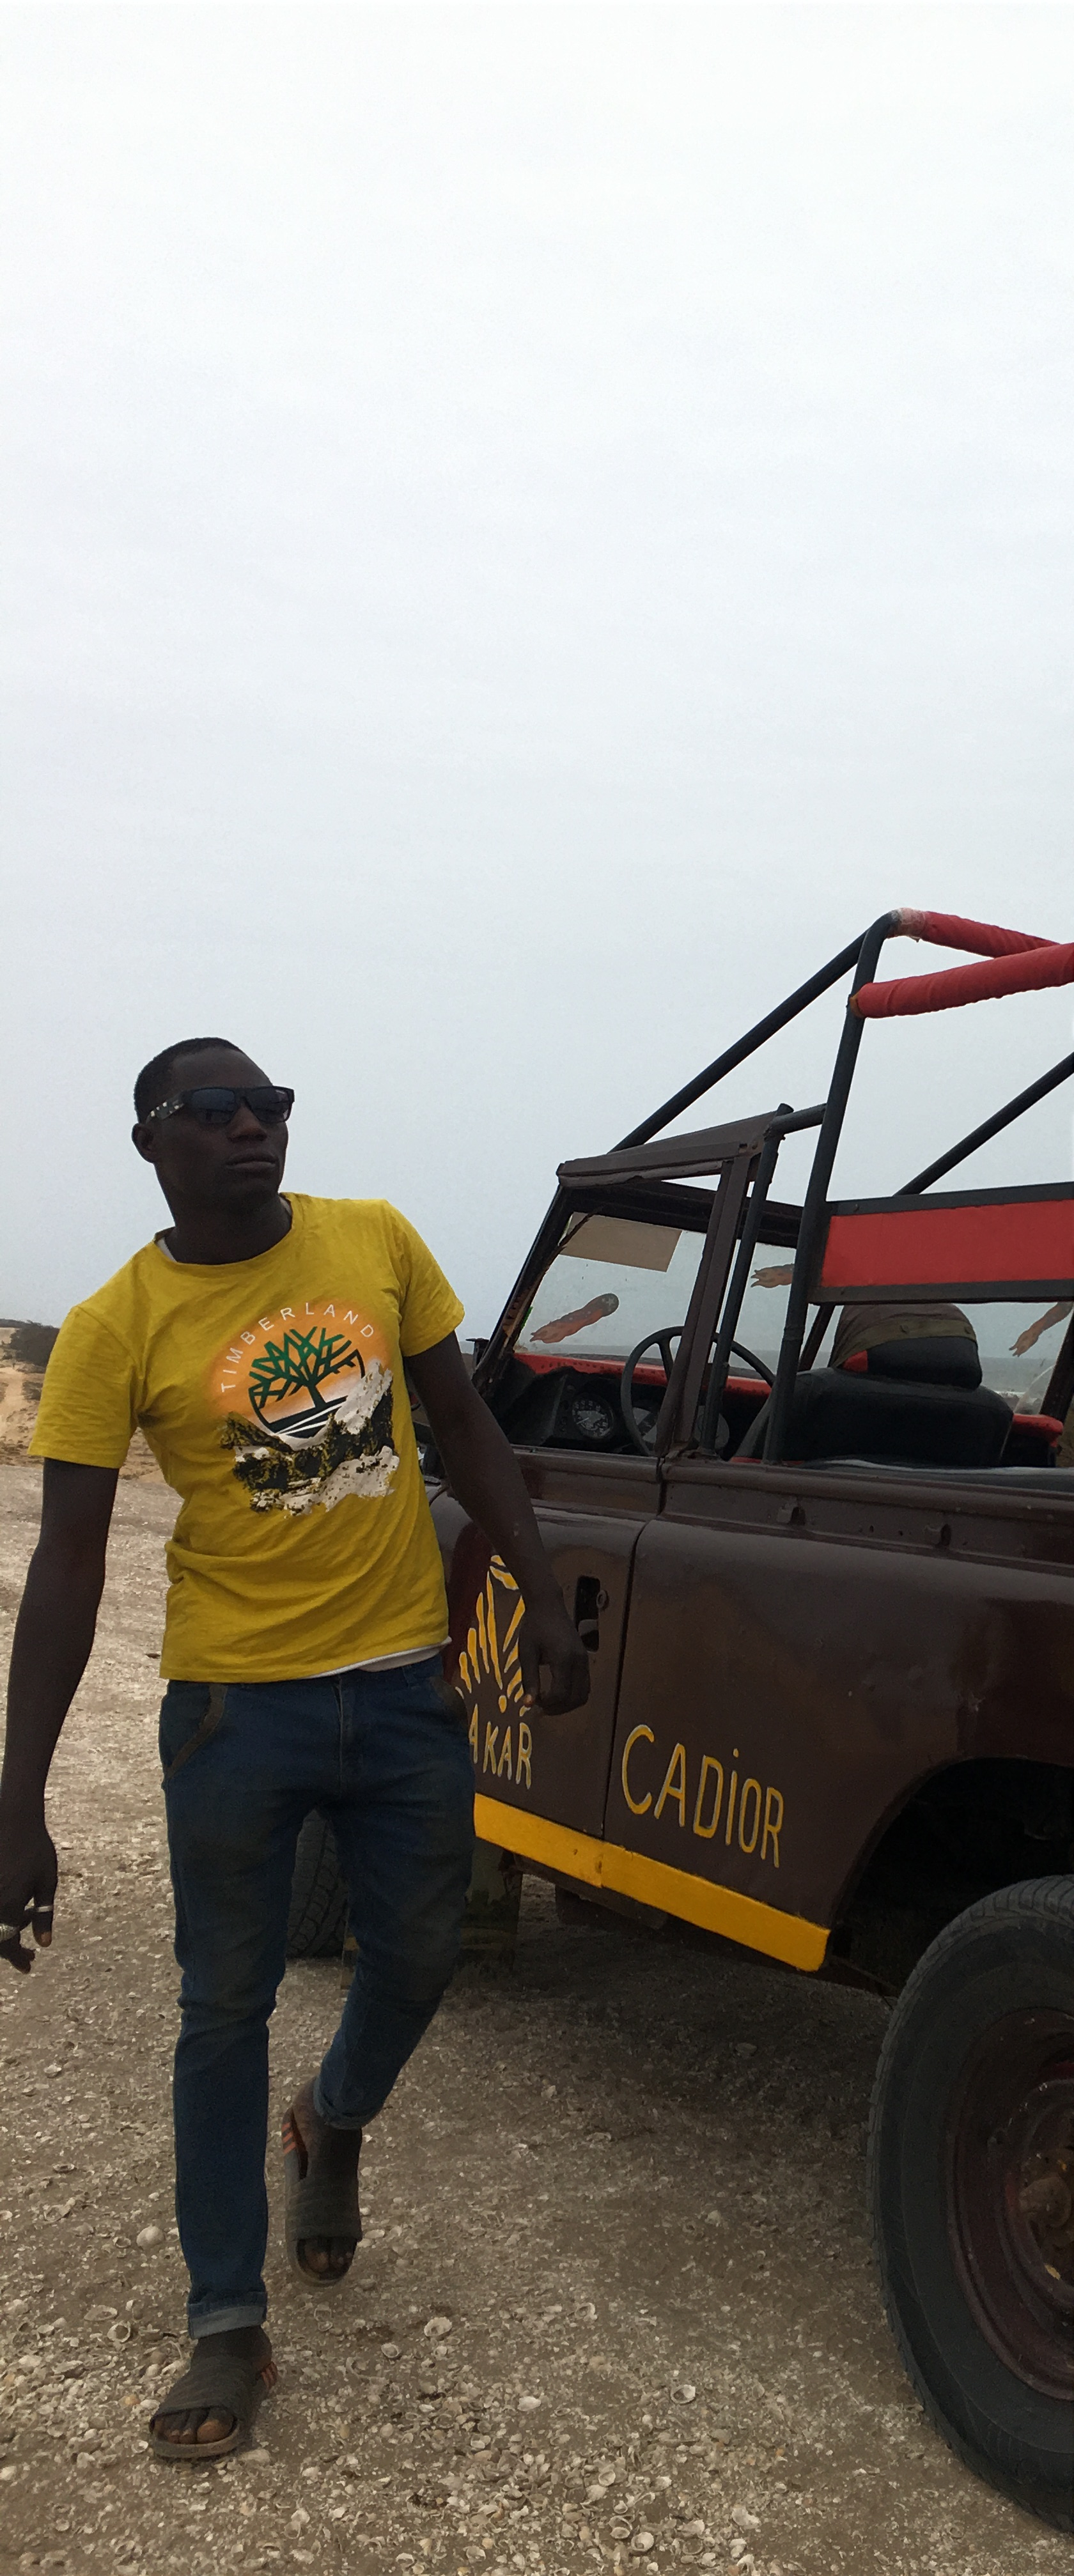 Our jeep and driver who spoke French but not English.